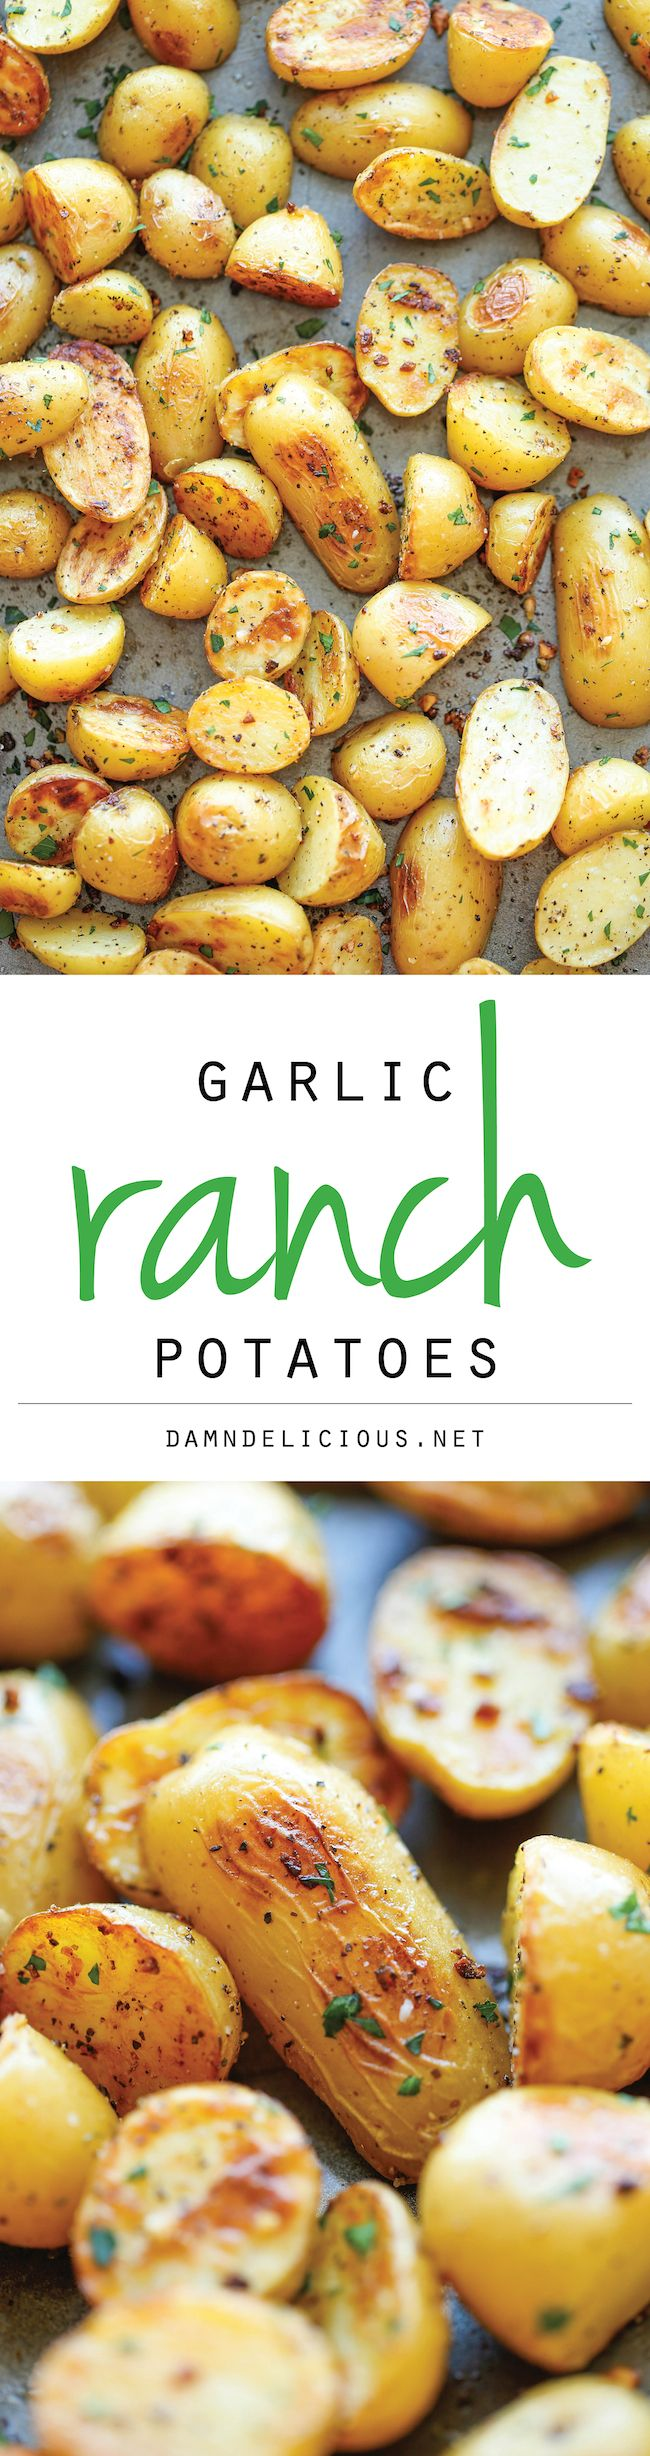 Garlic Ranch Potatoes - The best and easiest way to roast potatoes with garlic and ranch. After this, you'll never want to roast potatoes any other way!